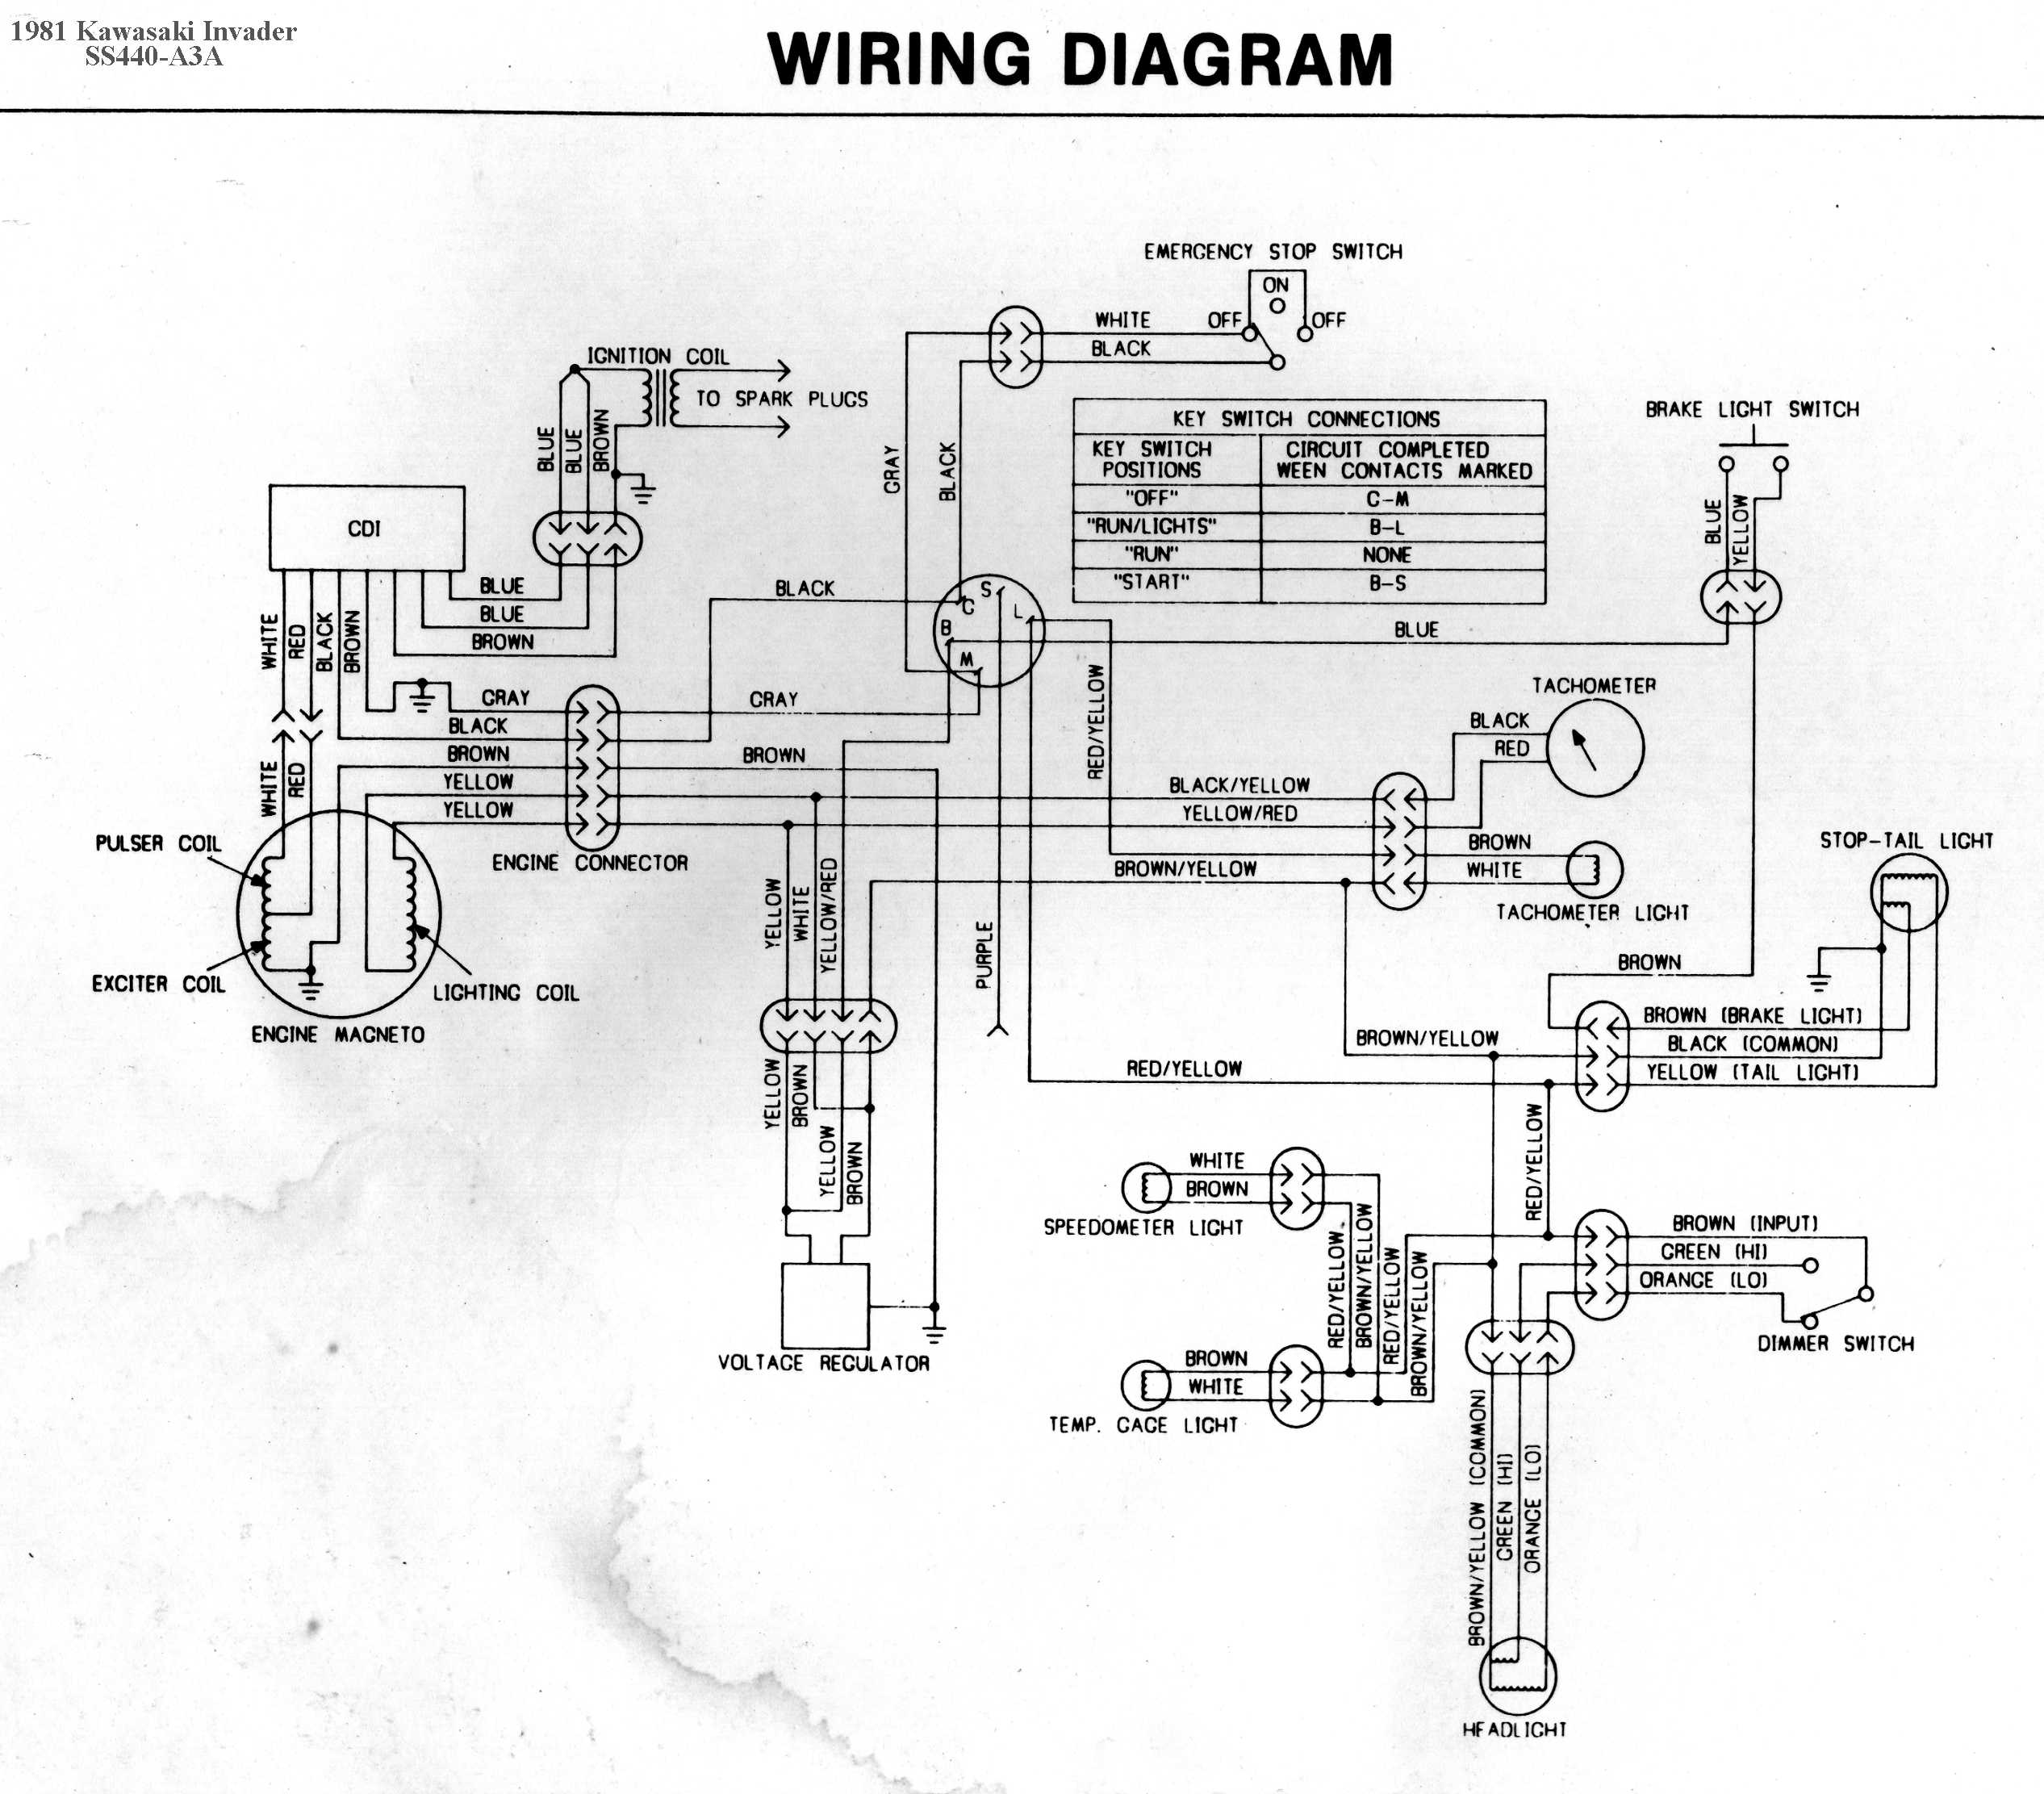 yamaha phazer wiring diagram - wiring diagrams data add-boot -  add-boot.ungiaggioloincucina.it  ungiaggioloincucina.it